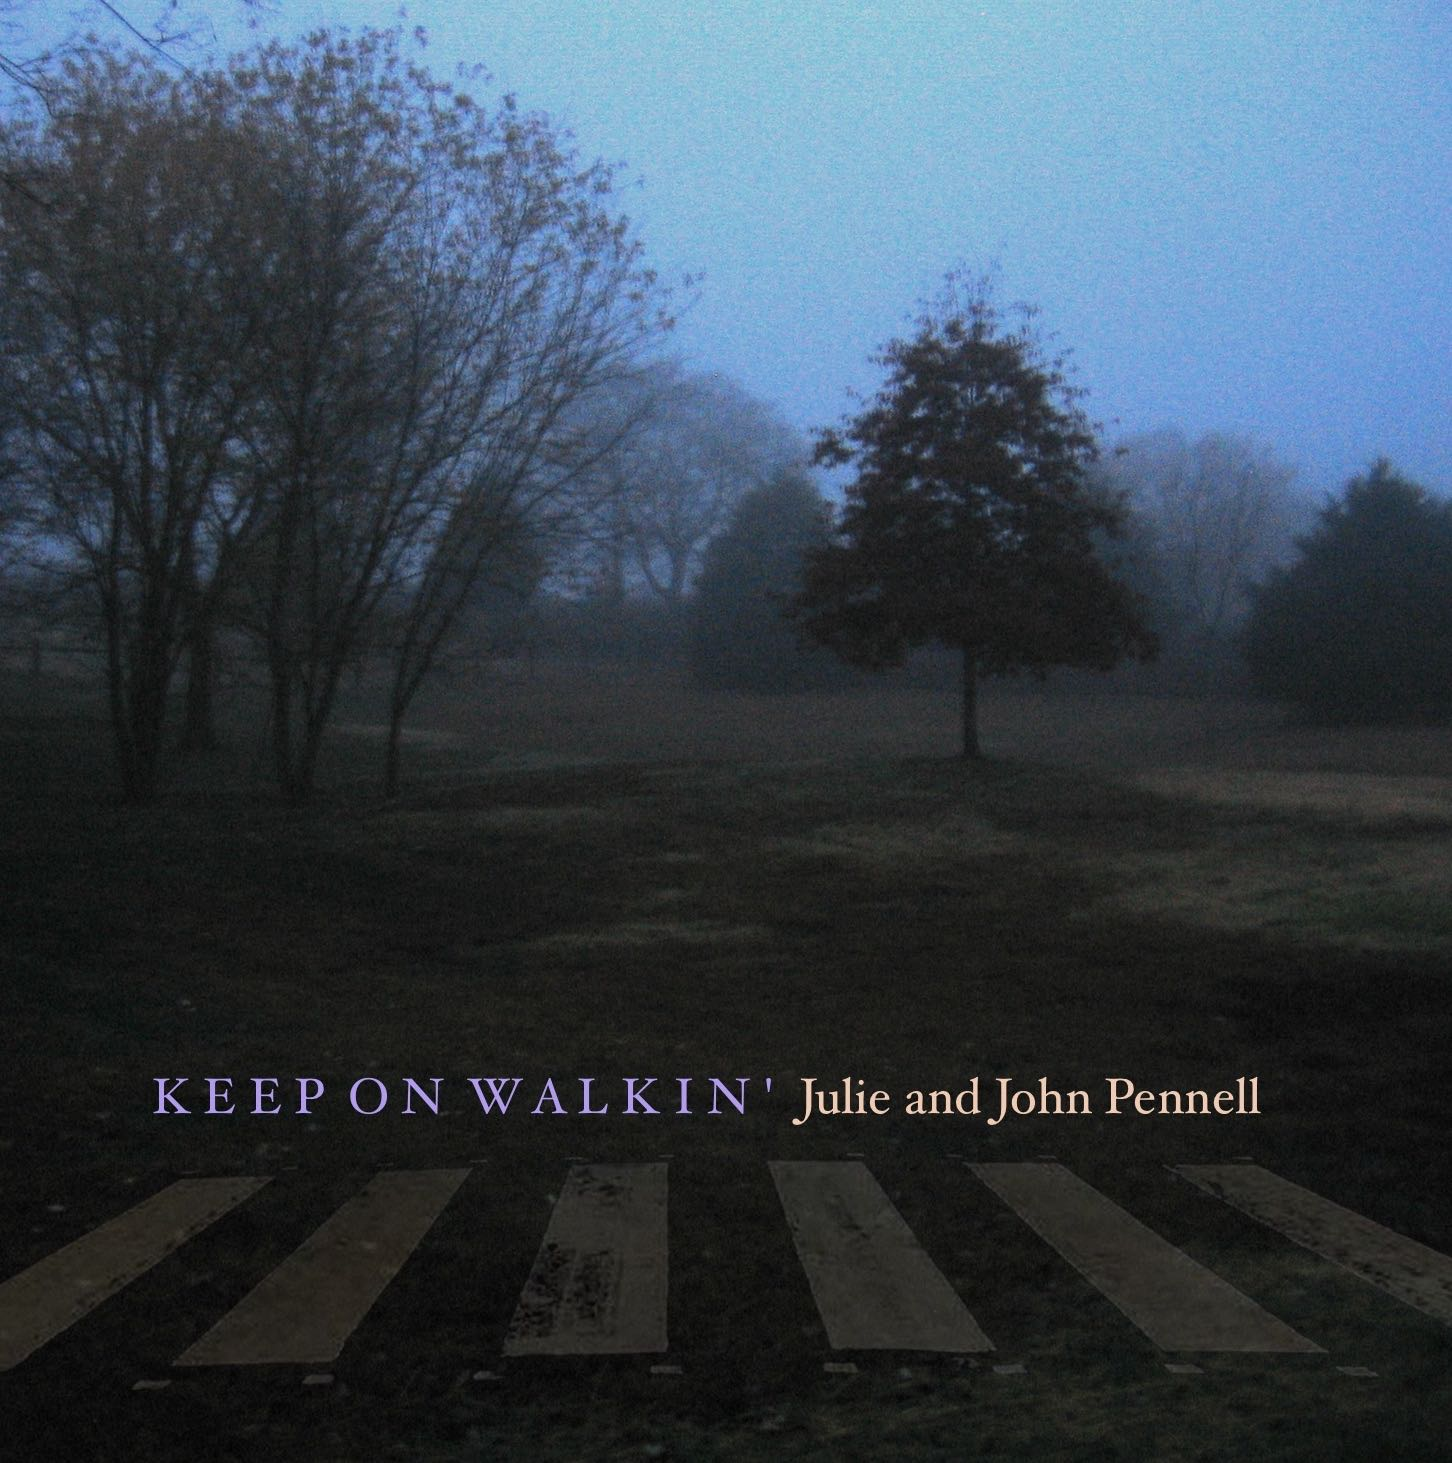 Keep on Walkin by Julie and John Pennell